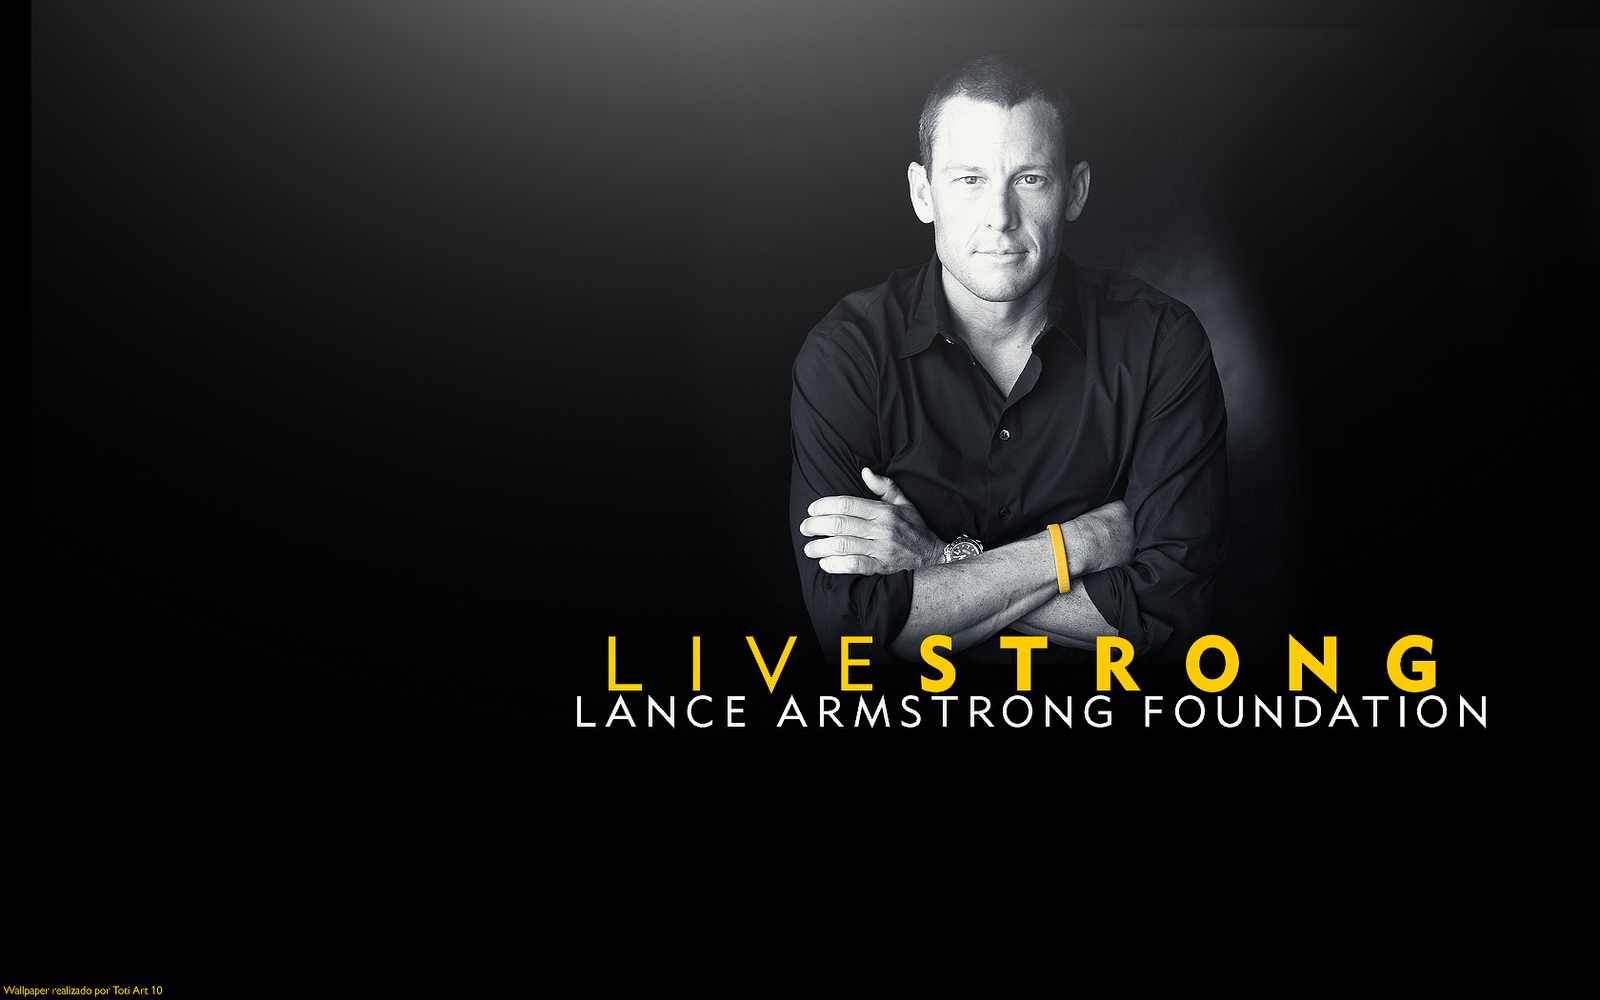 Lance Armstrong Live STRONG Foundation